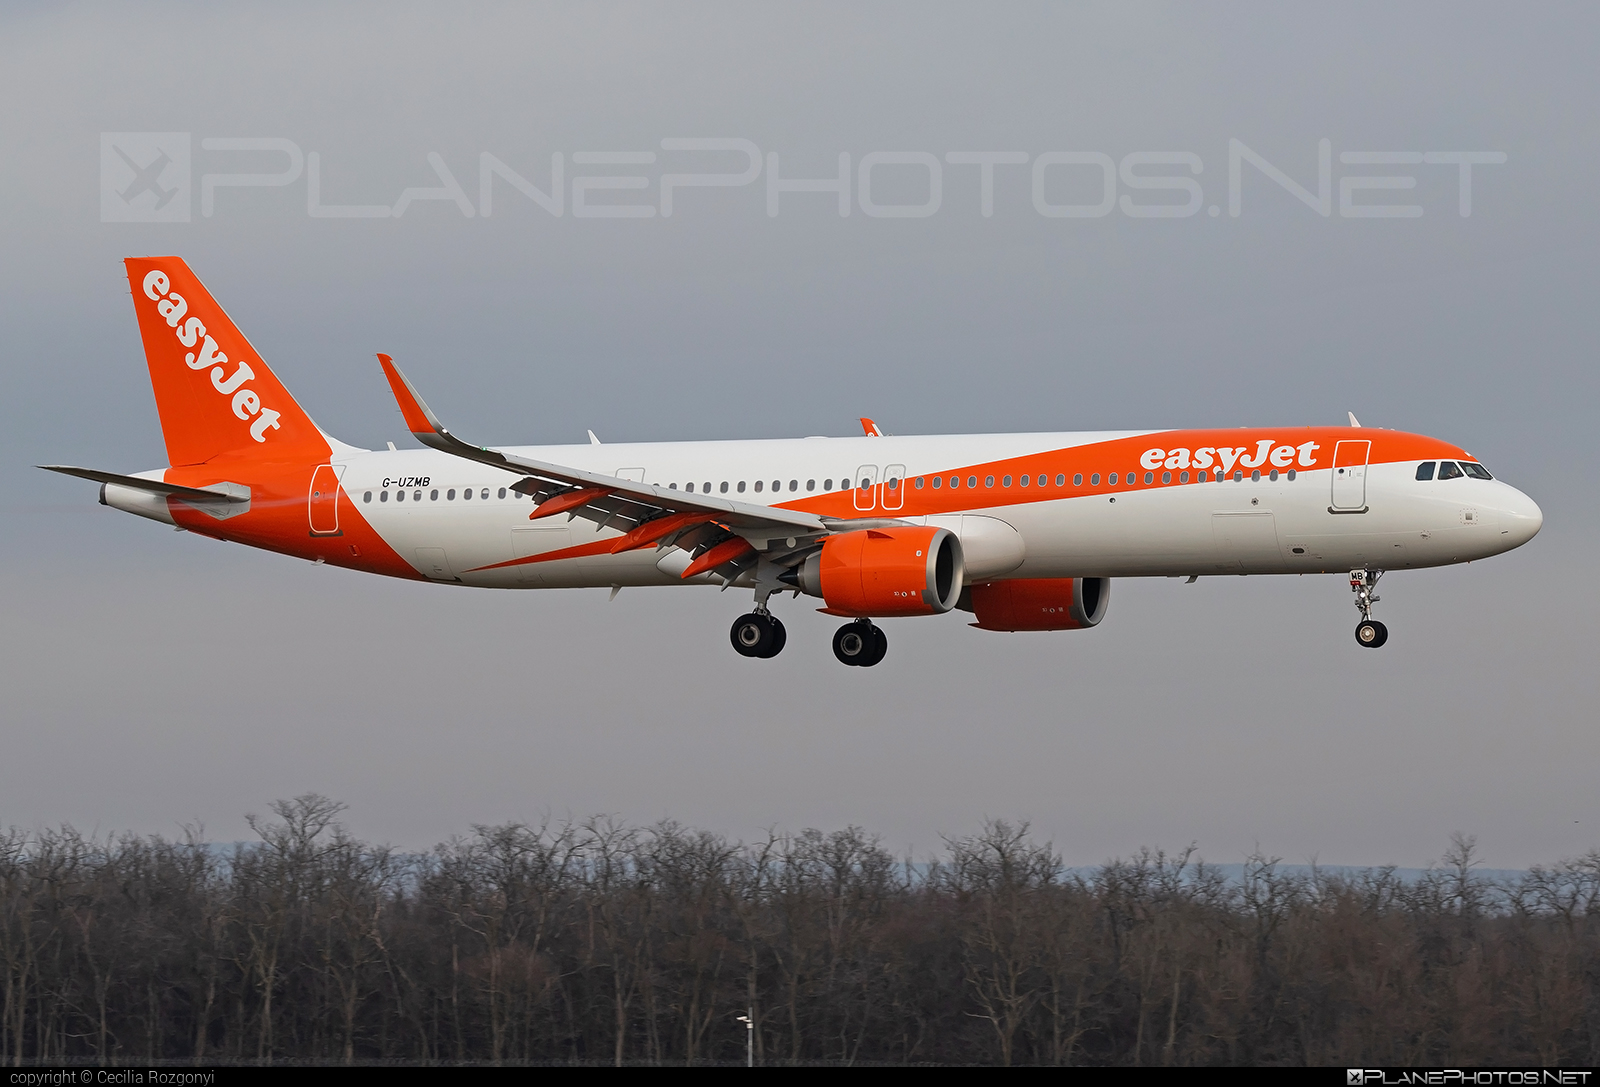 Airbus A321-251NX - G-UZMB operated by easyJet #a320family #a321 #a321neo #airbus #airbus321 #airbus321lr #easyjet